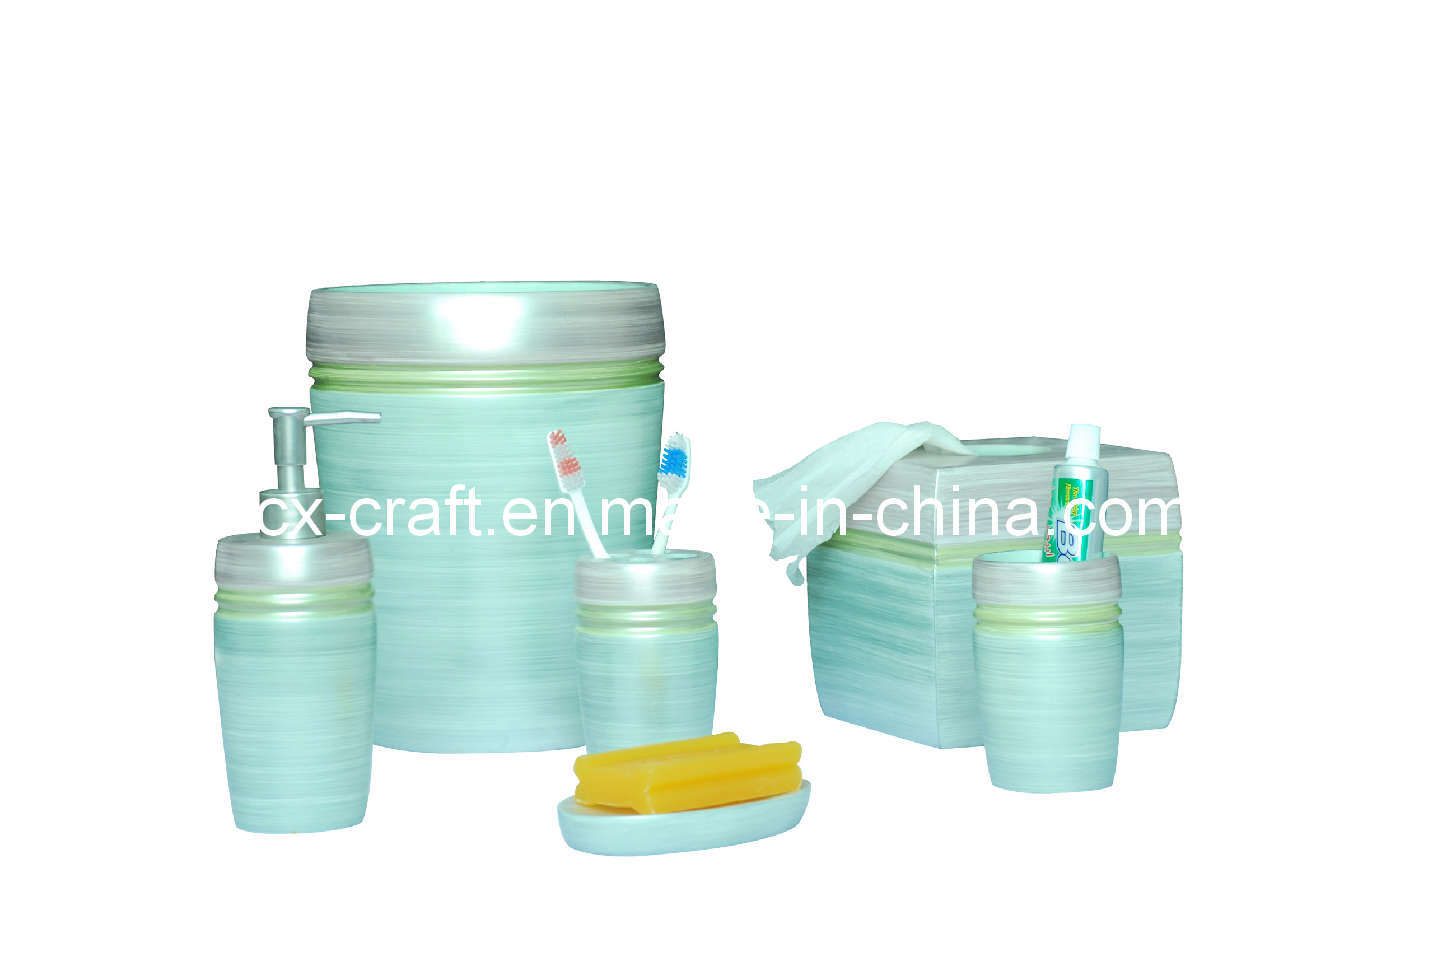 China fashion bathroom accessory set cx080159 china for Bathroom accessory sets